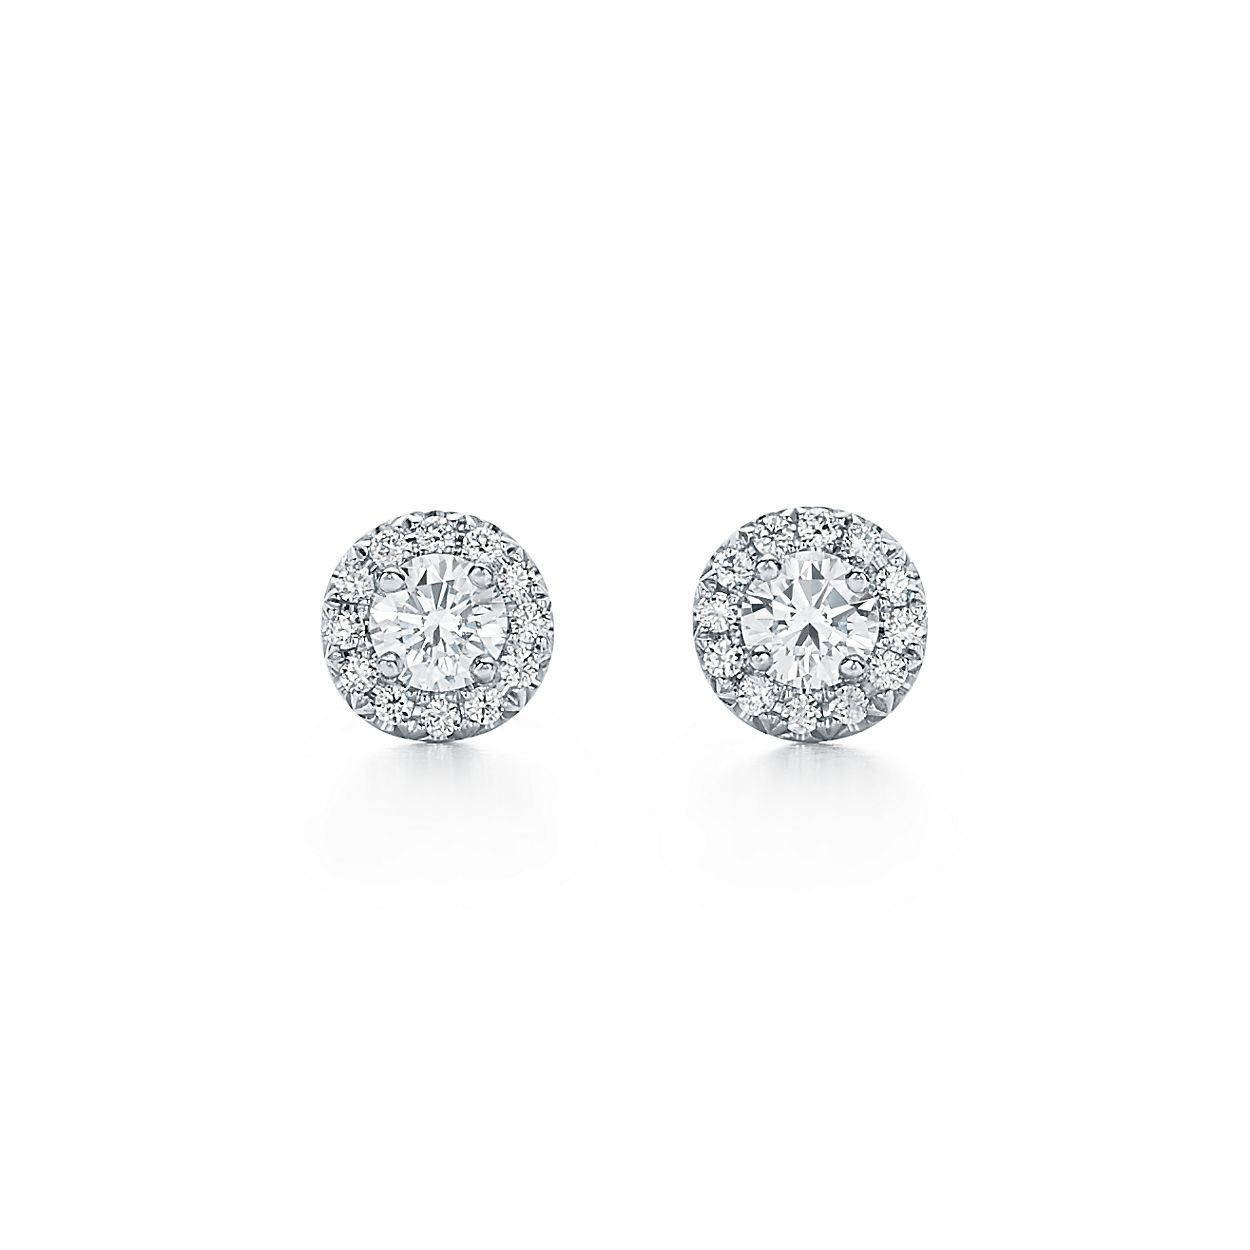 synthetic with product sterling earrings rose diamond platinum jewellery silver plated